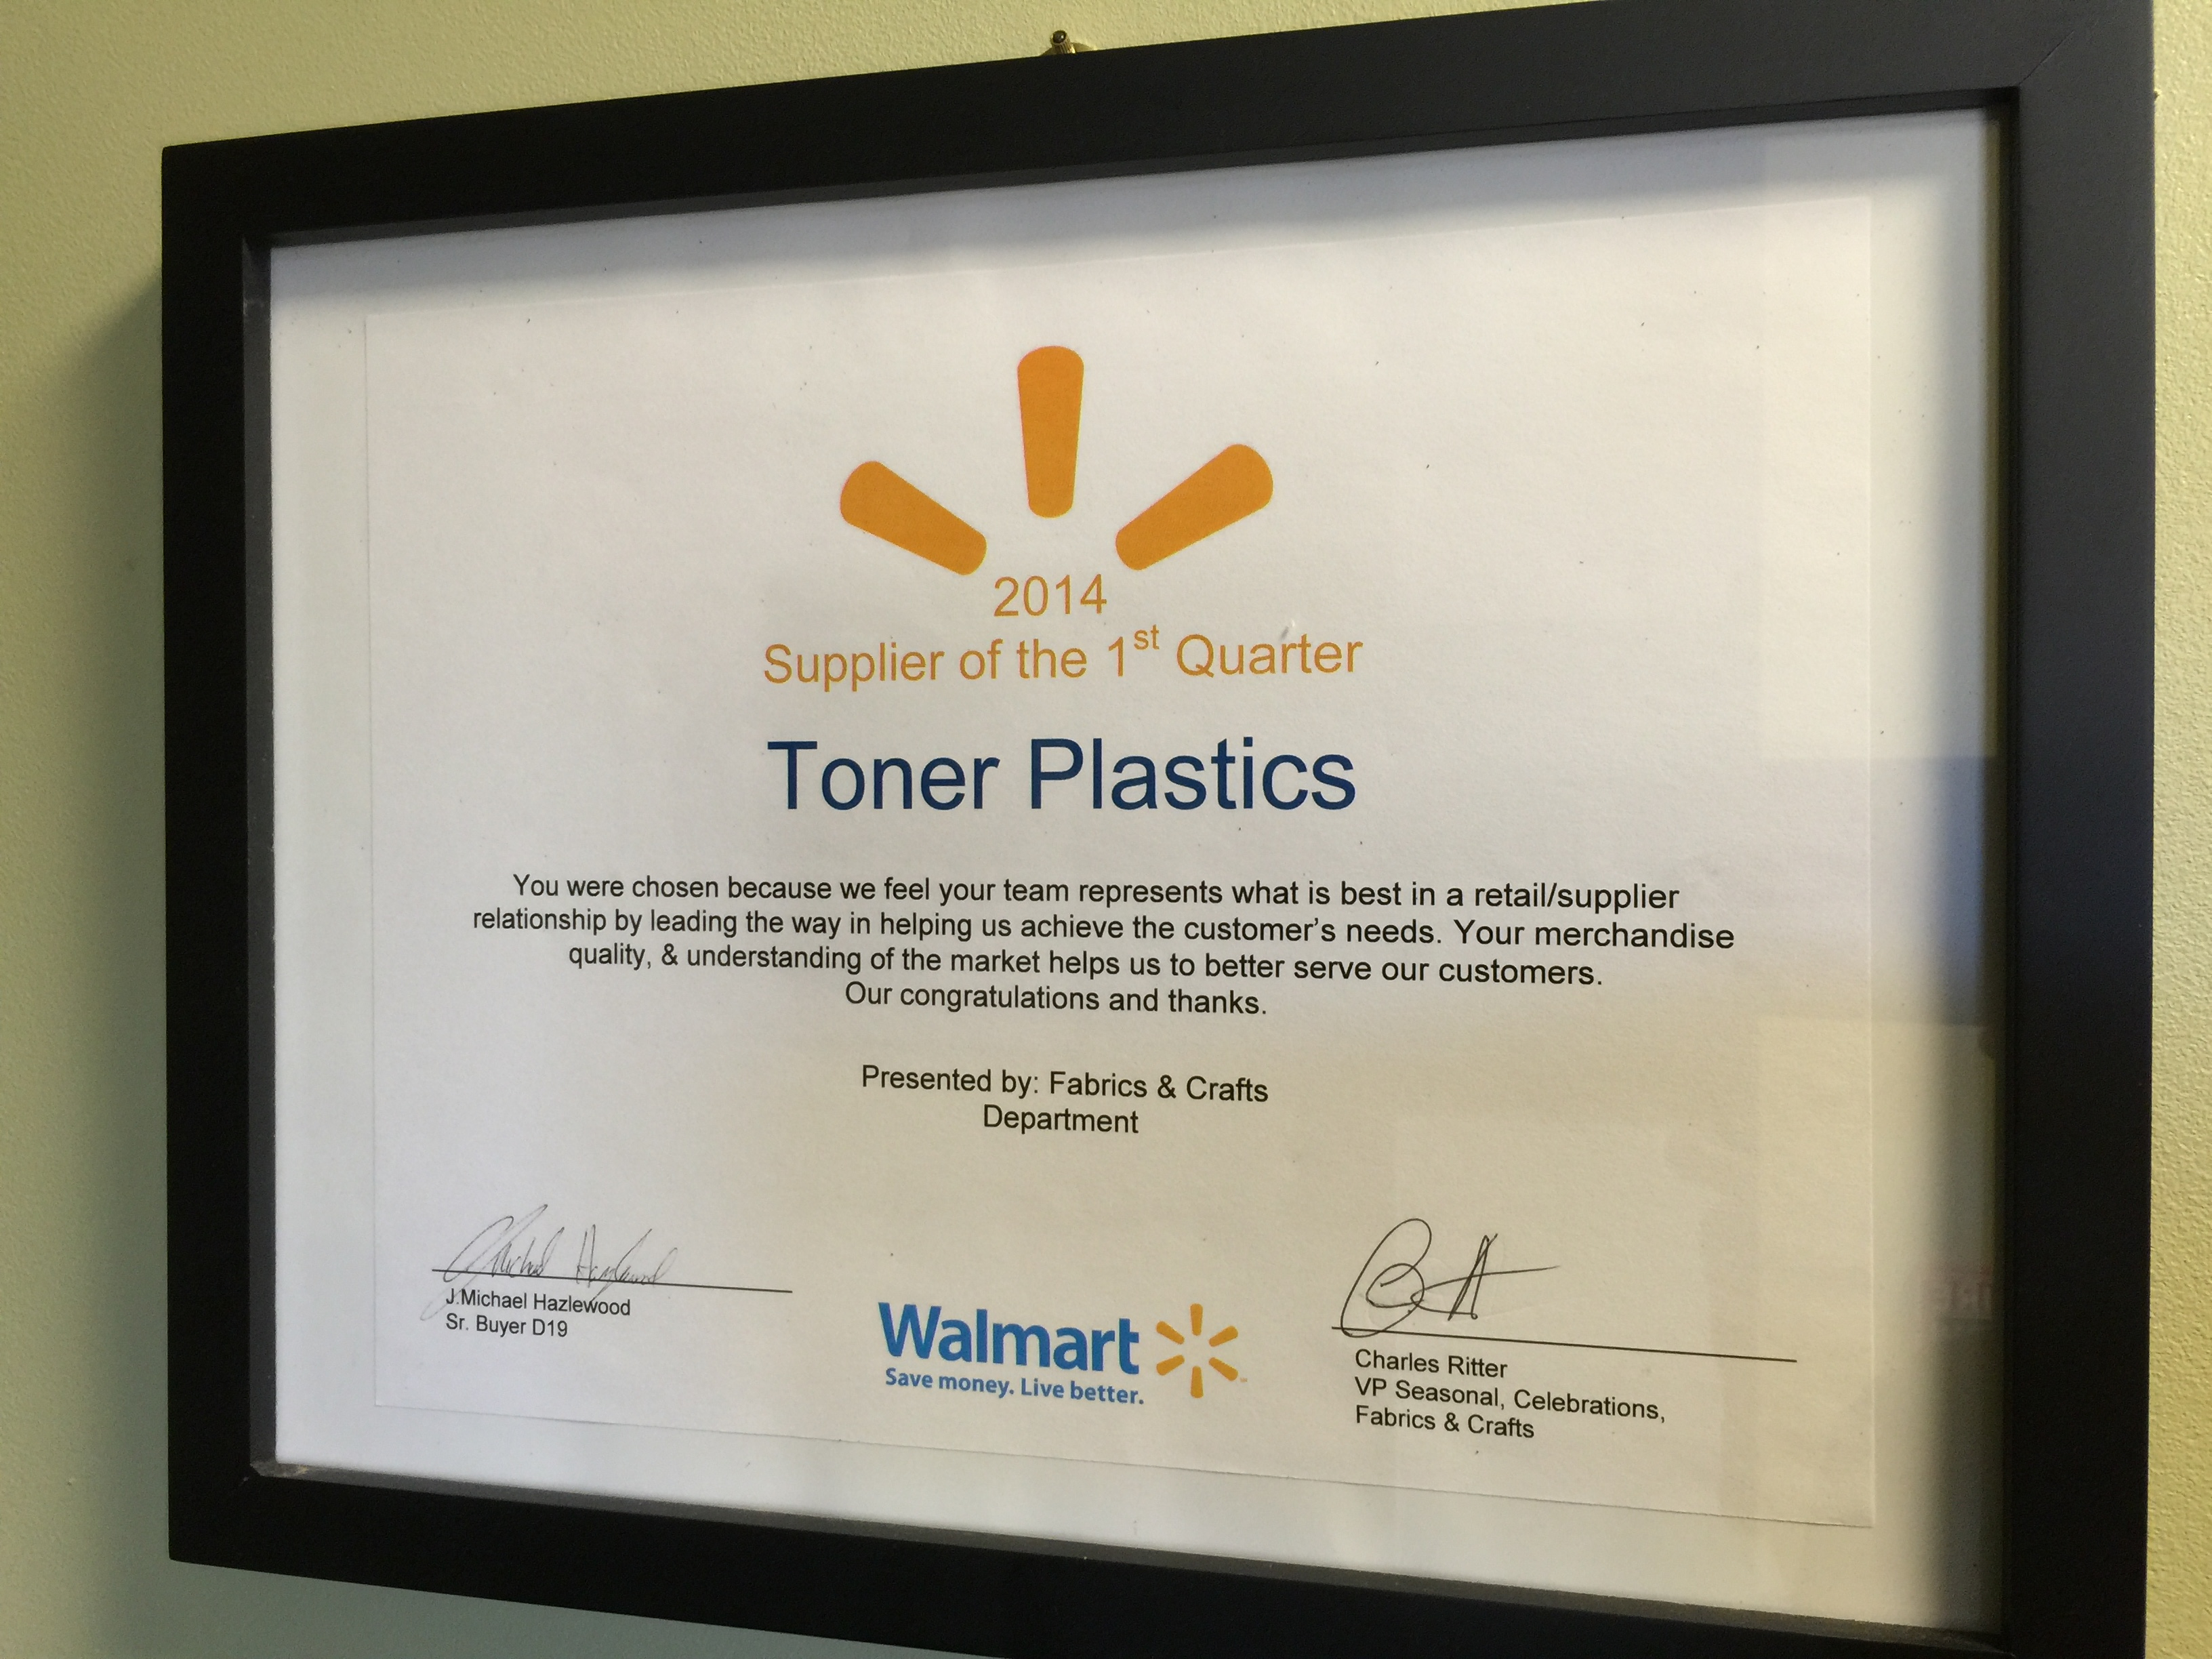 Walmart crafts and fabrics - Walmart Supplier Award